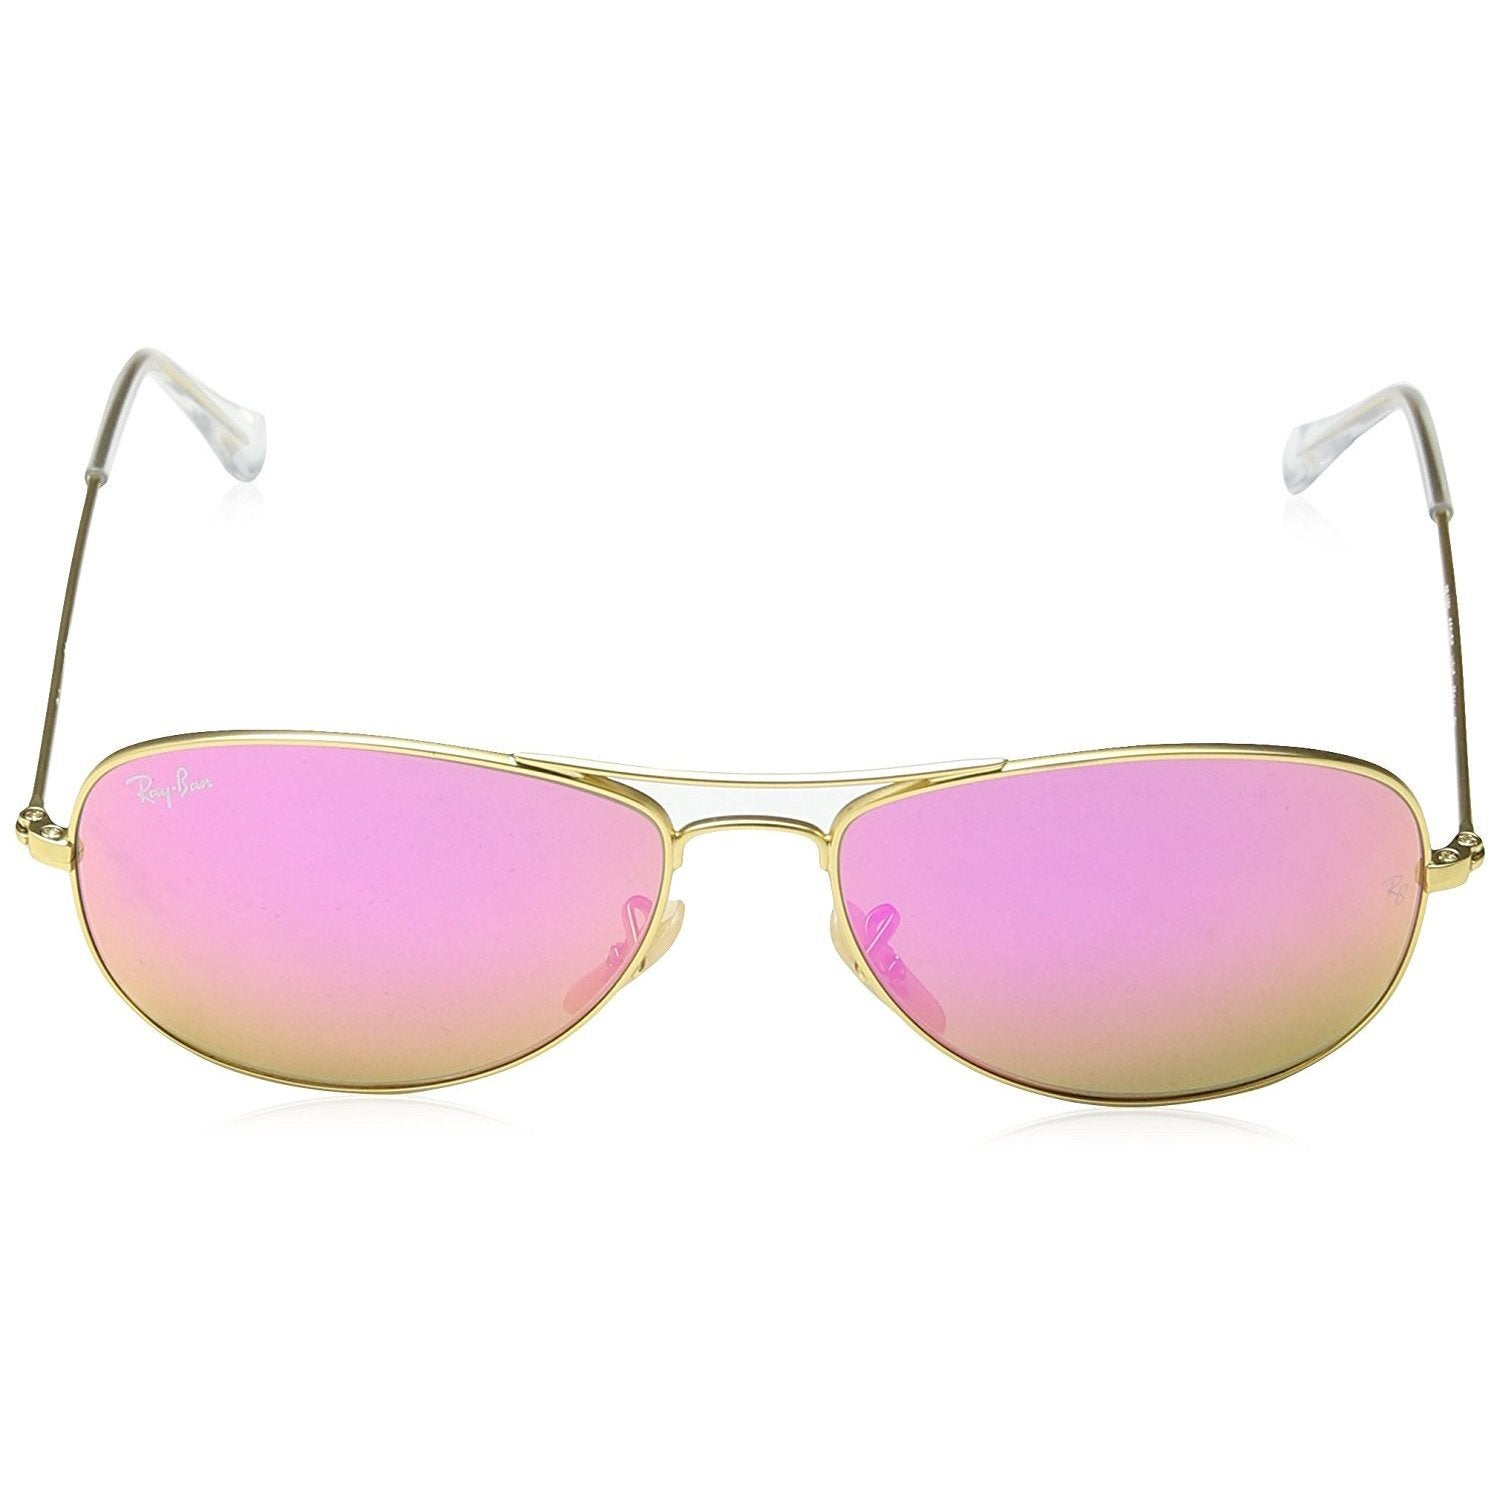 808cbcd155 Shop Ray-Ban Cockpit RB3362 Men s Gold Frame Cyclamen Flash 59mm Lens  Sunglasses - Free Shipping Today - Overstock - 15902567